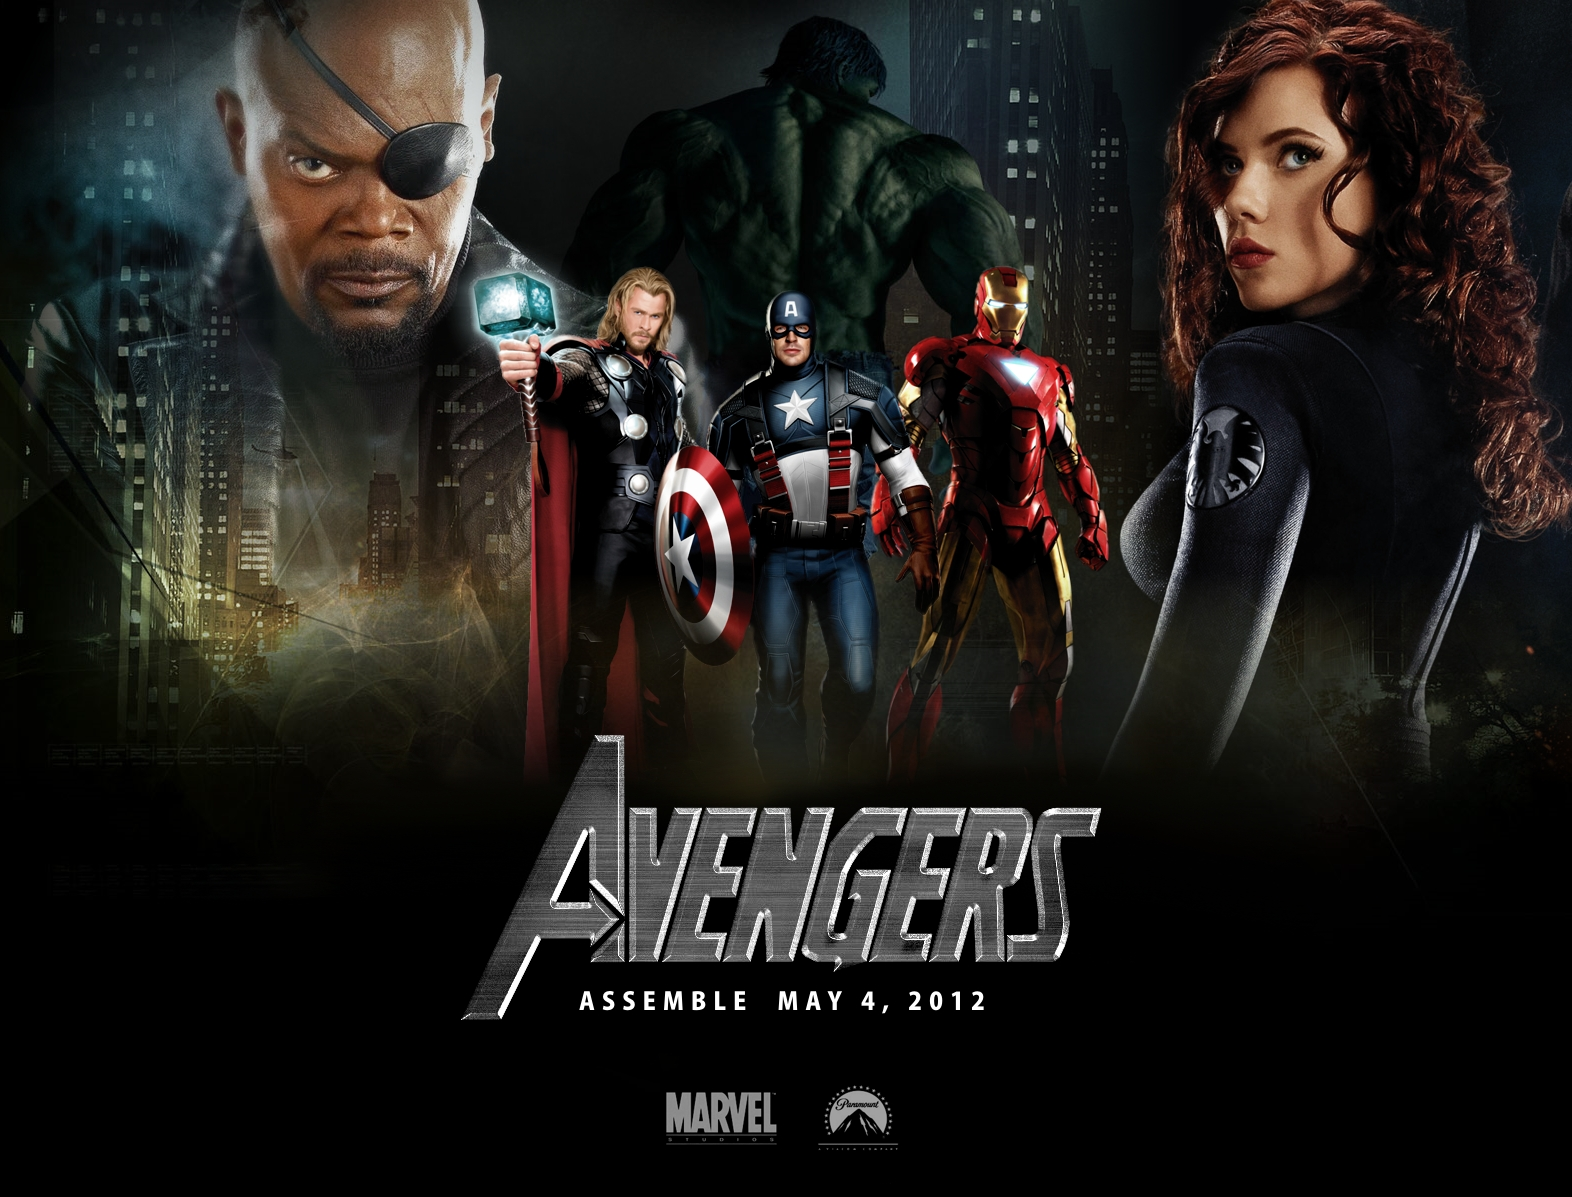 http://3.bp.blogspot.com/-db2KiFxd0mE/T1Nji1XYvvI/AAAAAAAACAU/c2rK97GUtvw/s1600/the-avengers-movie-poster-wallpaper.jpg